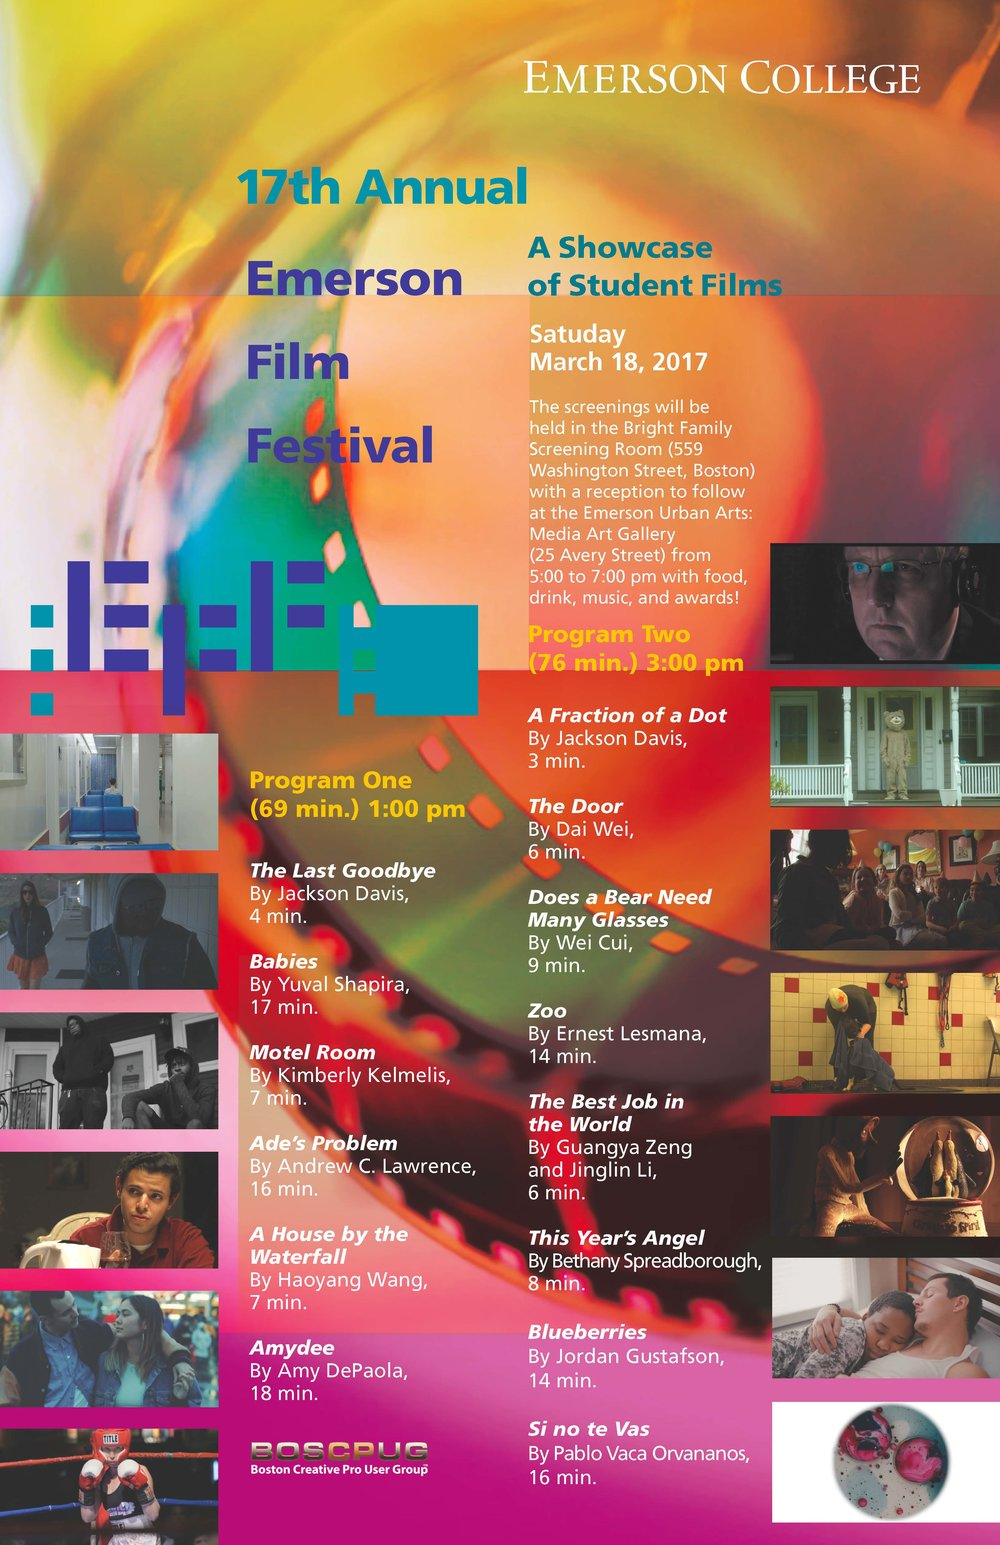 OFFICIAL SELECTION - AMYDEE is an OFFICIAL SELECTION of the 17th Annual Emerson Film Festival, A Showcase of Student Films.AMYDEE was produced to satisfy the requirements of the Master of Fine Arts degree at Emerson College.